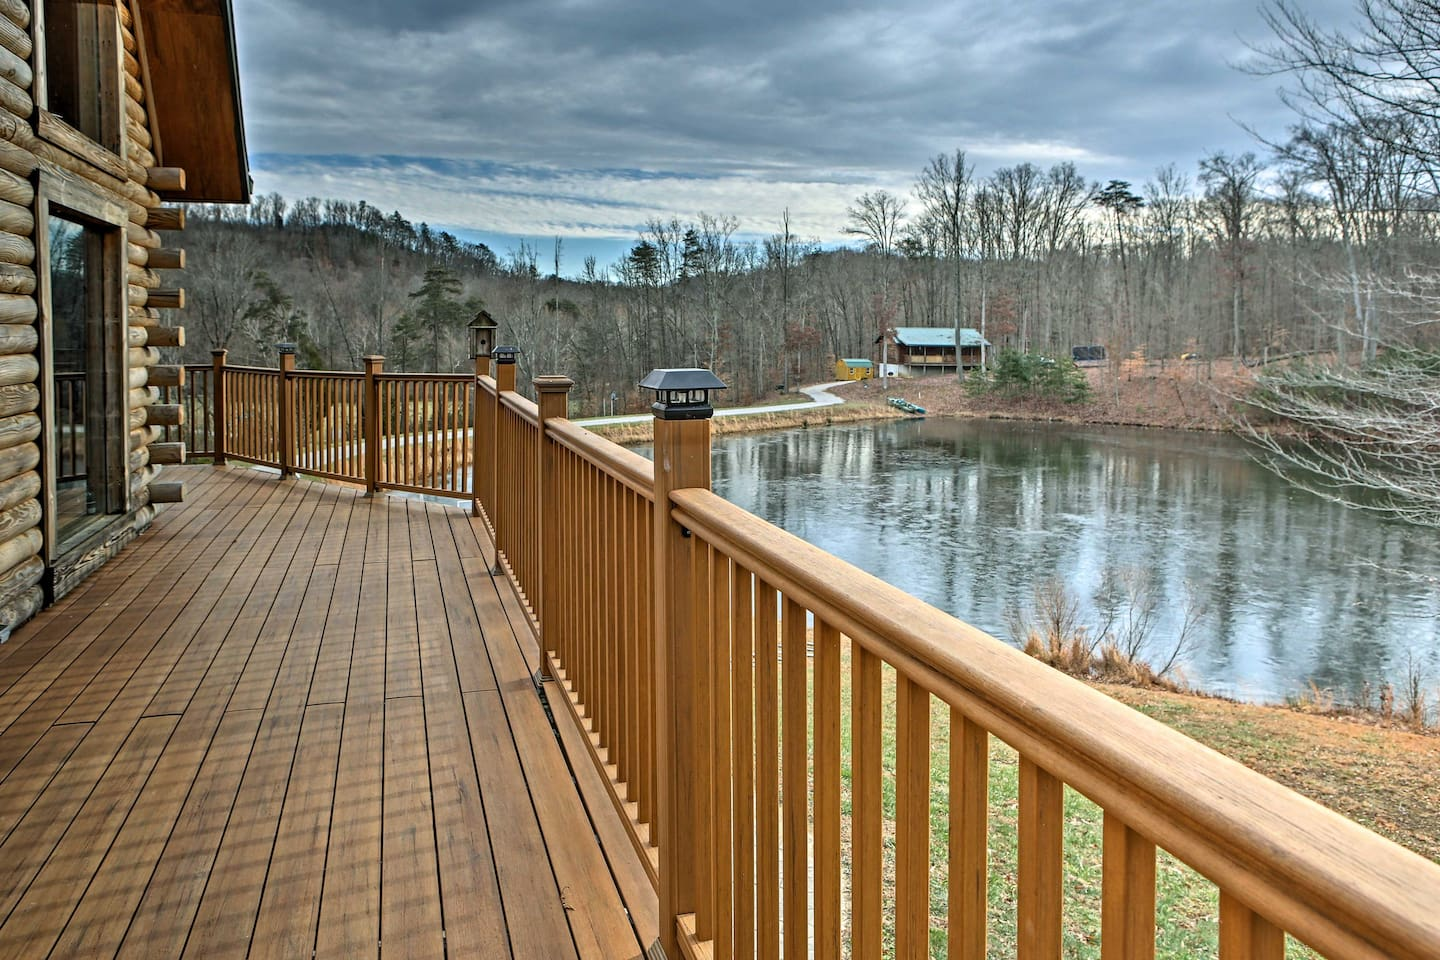 'Heavenly Hills Lodge' features a pool table, gorgeous views, and private lake!